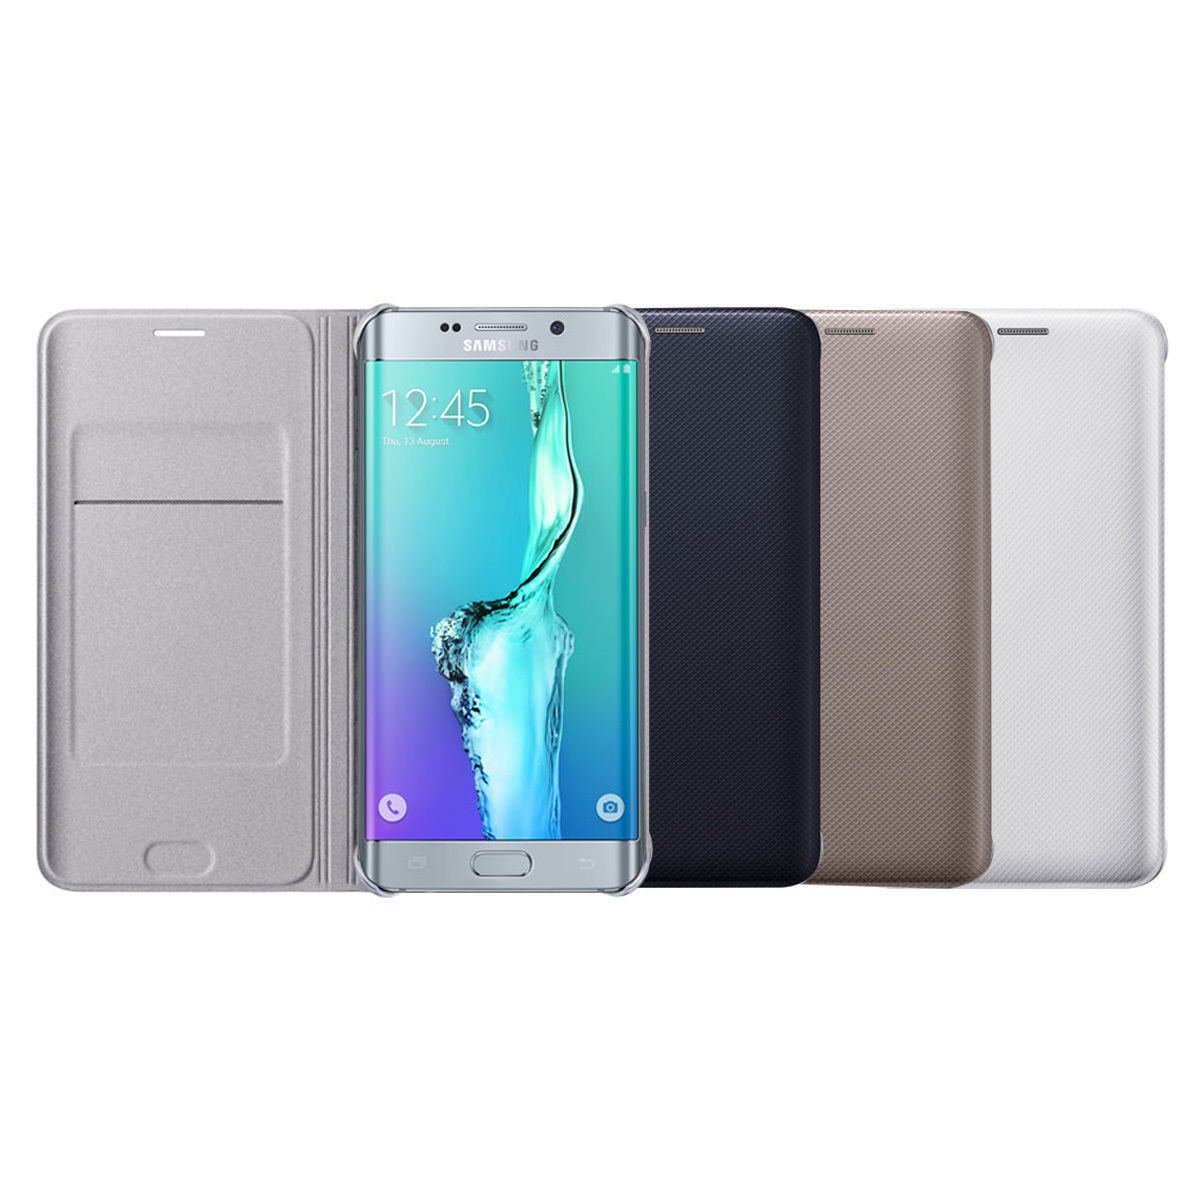 e125e8a71c fit to viewer. prev next. Official Genuine Samsung Galaxy S6 edge+ WALLET  FLIP COVER ...